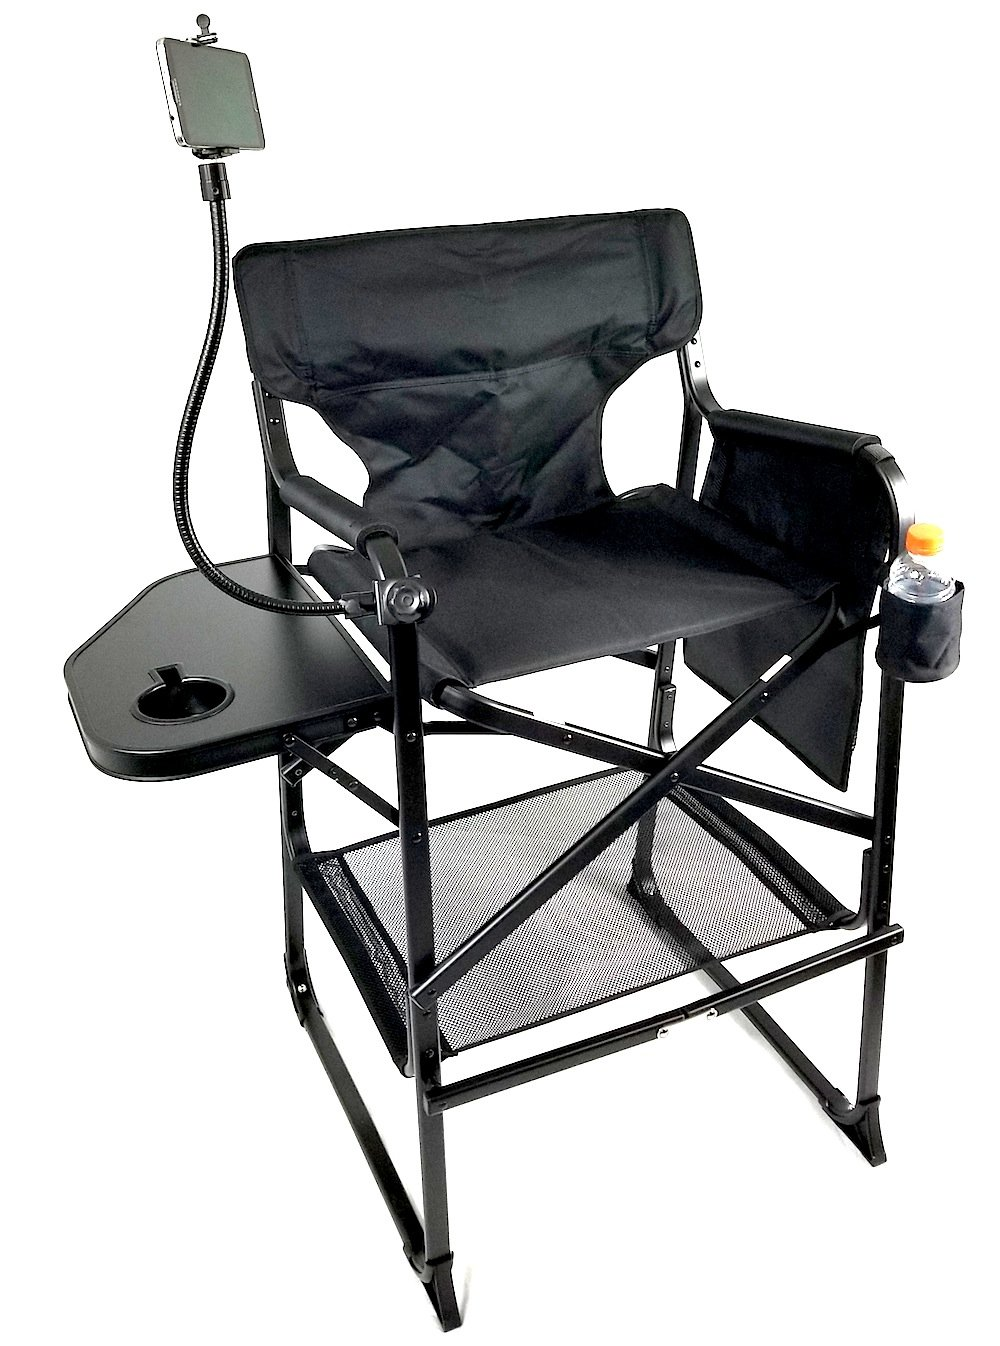 TuscanyPro Tall Compact Aluminum Director Chair w/ PHONE HOLDER & Trash Bag--CARRY BAG INCLUDED! PRODUCT--5 YEARS WARRANTY